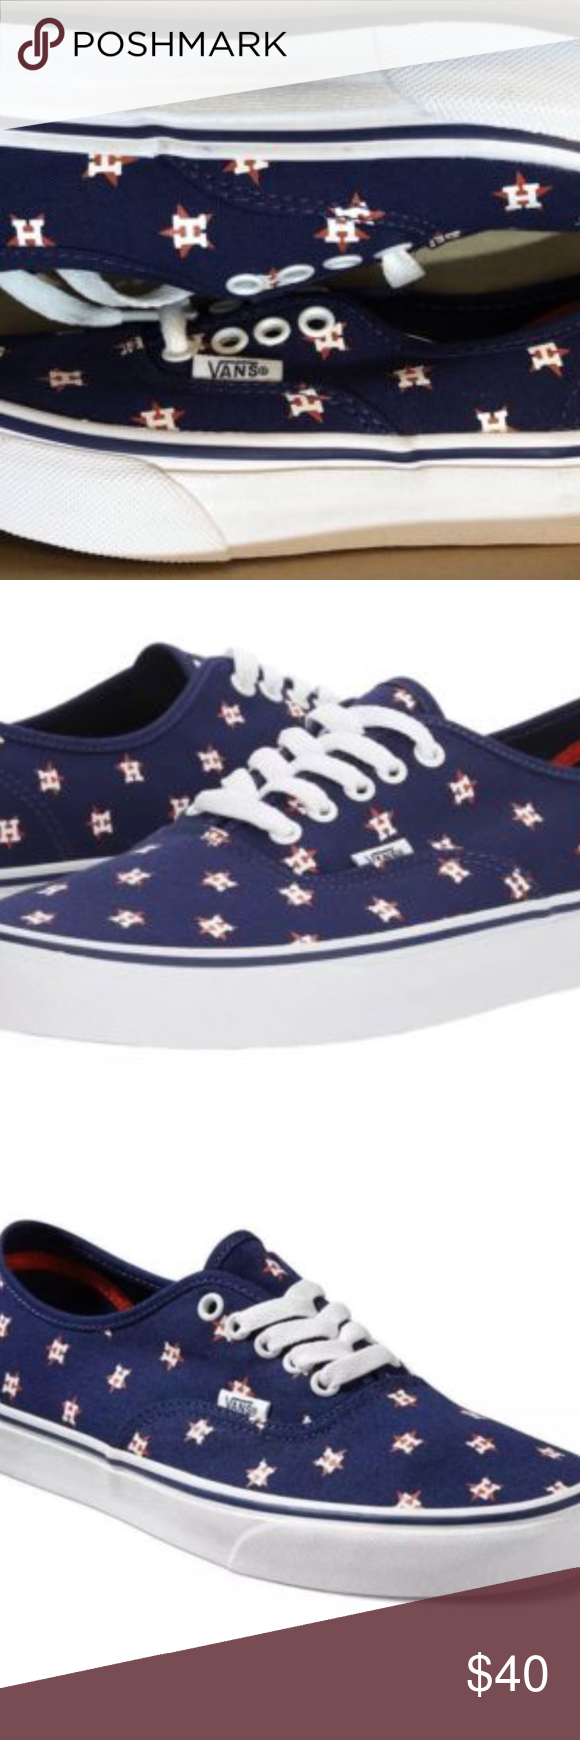 3671771e01e Vans Authentic MLB Houston Astros Canvas Navy🌹 Vans Authentic MLB Houston  Astros Canvas Casual Navy Skate Shoes Kids Size 11.5 Brand new in box Vans  Shoes ...